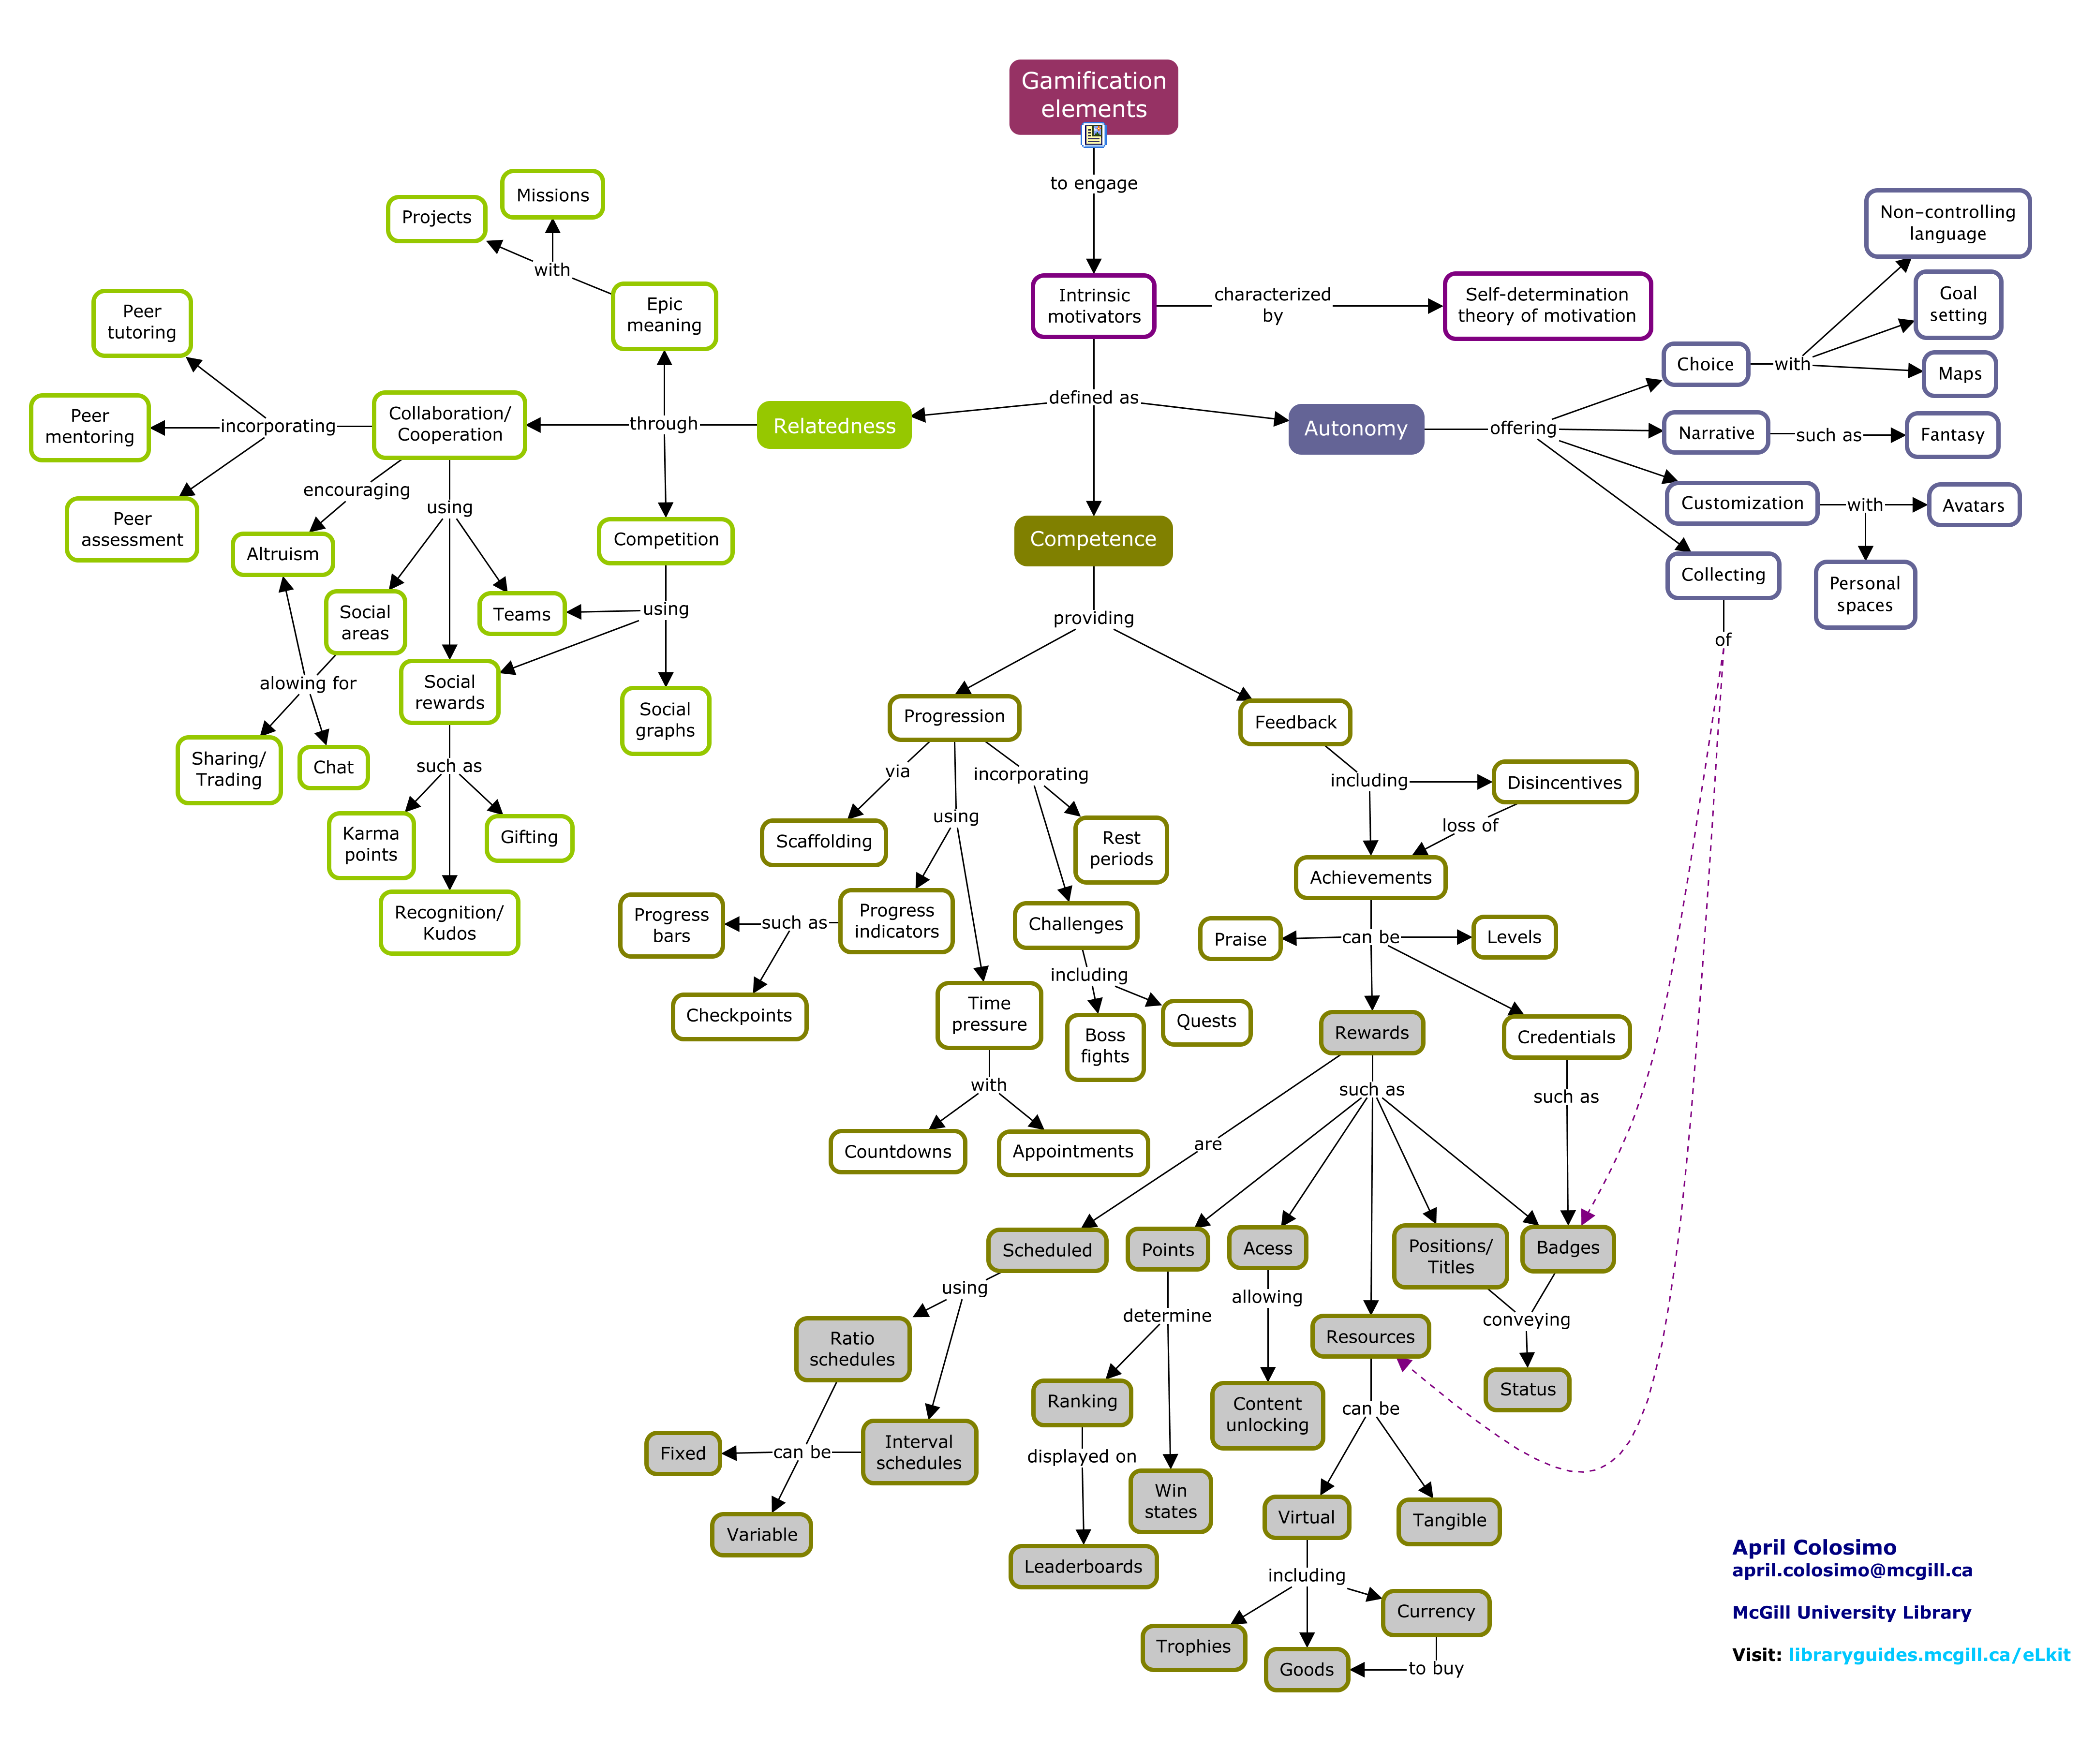 Concept map of game elements